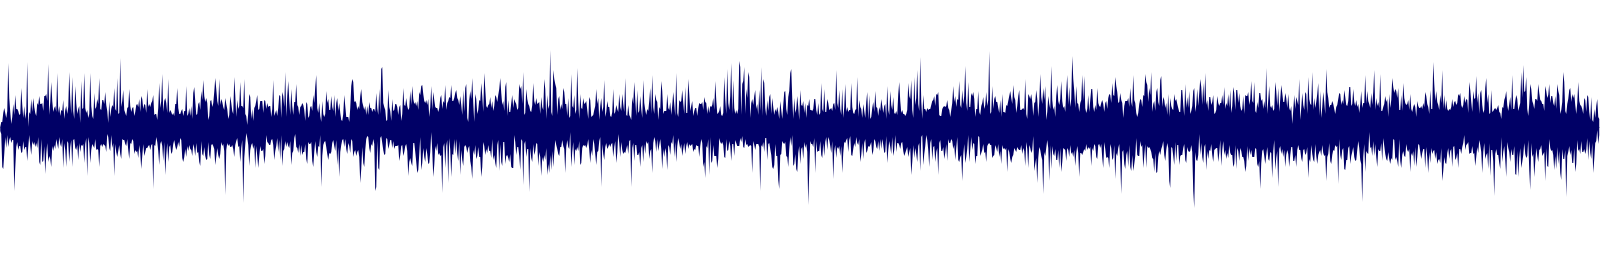 waveform of track #129266